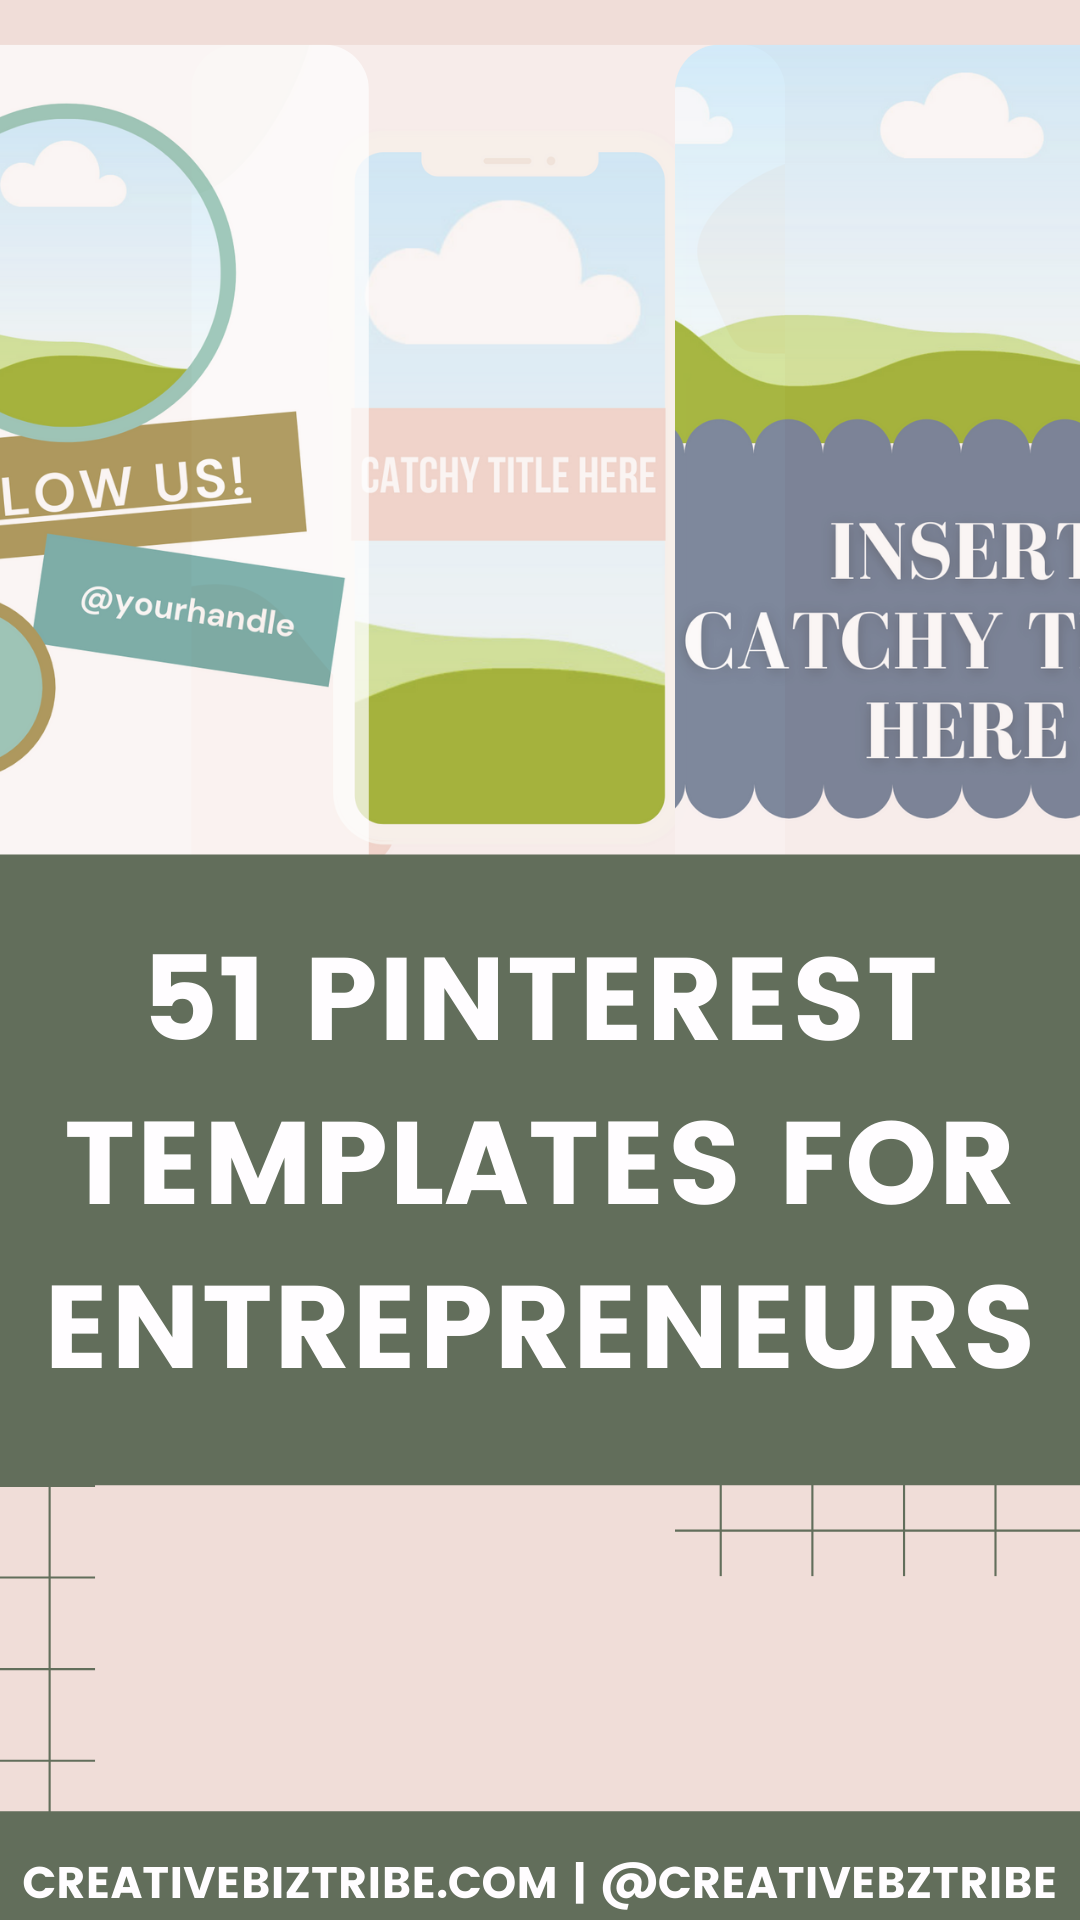 How to Make Pins 51 pinterest templates via Canva creativebiztribe.com #pinteresttemplate #pinterest #canvatemplate 51